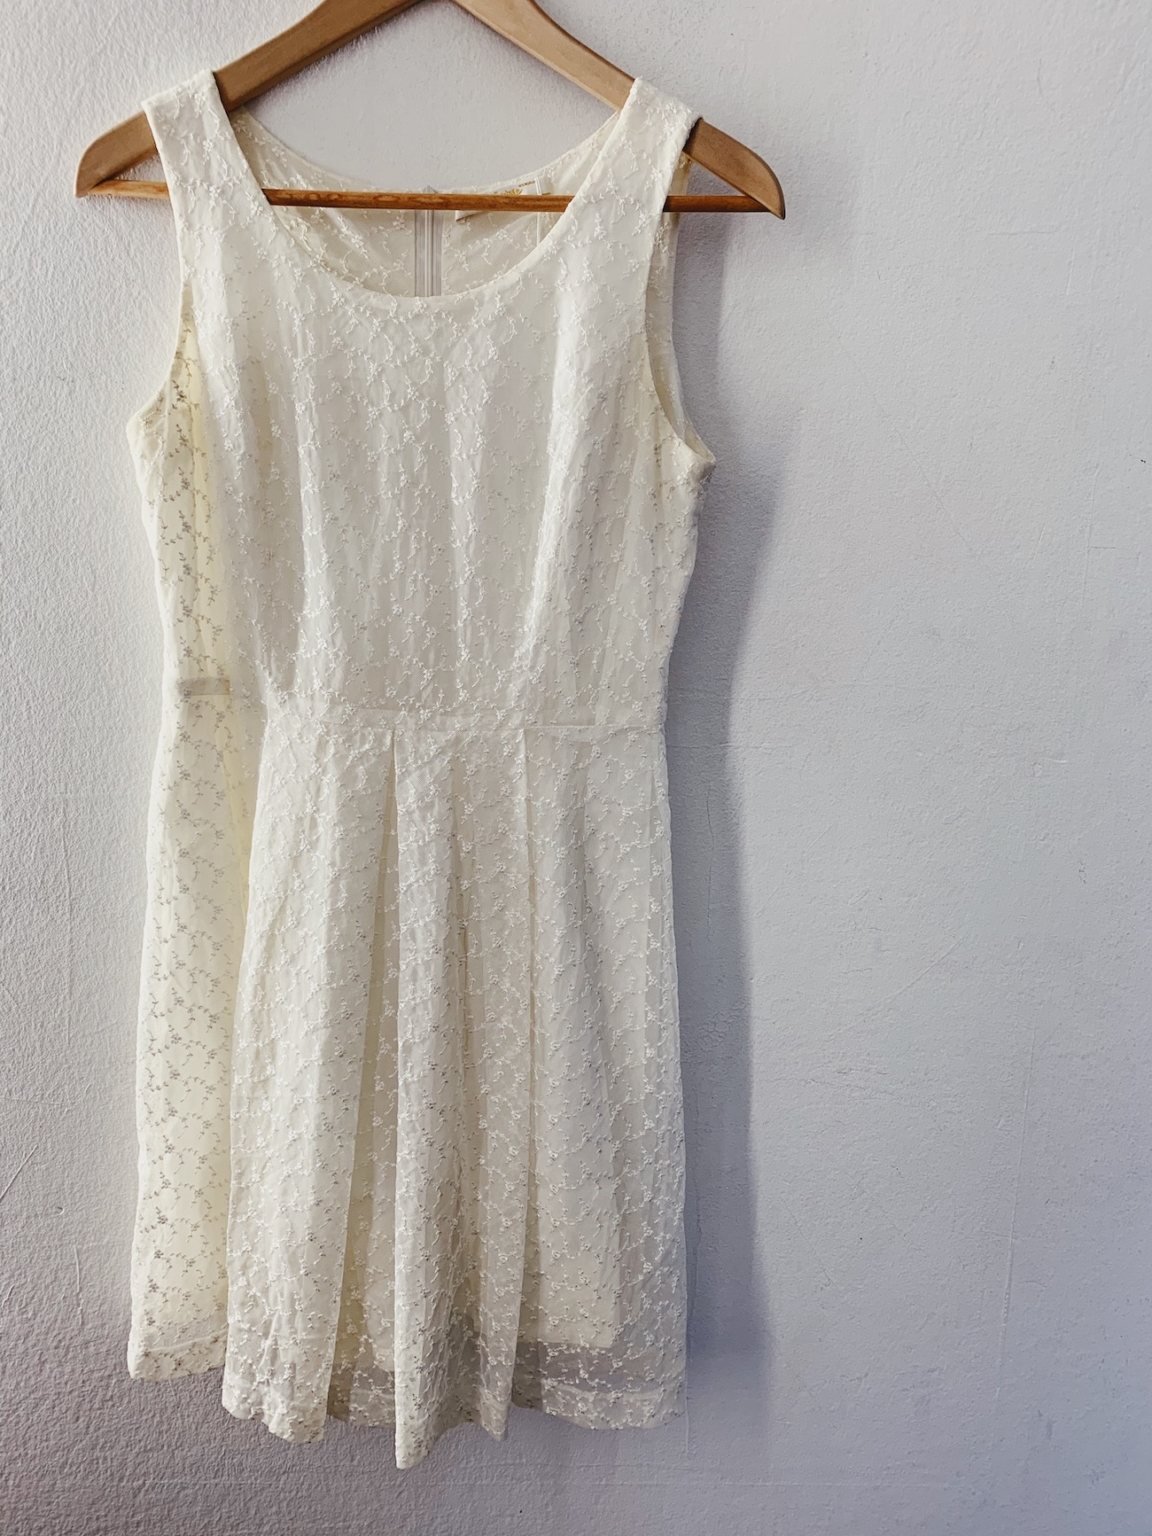 Ecosphere Vintage - White Lace Dress